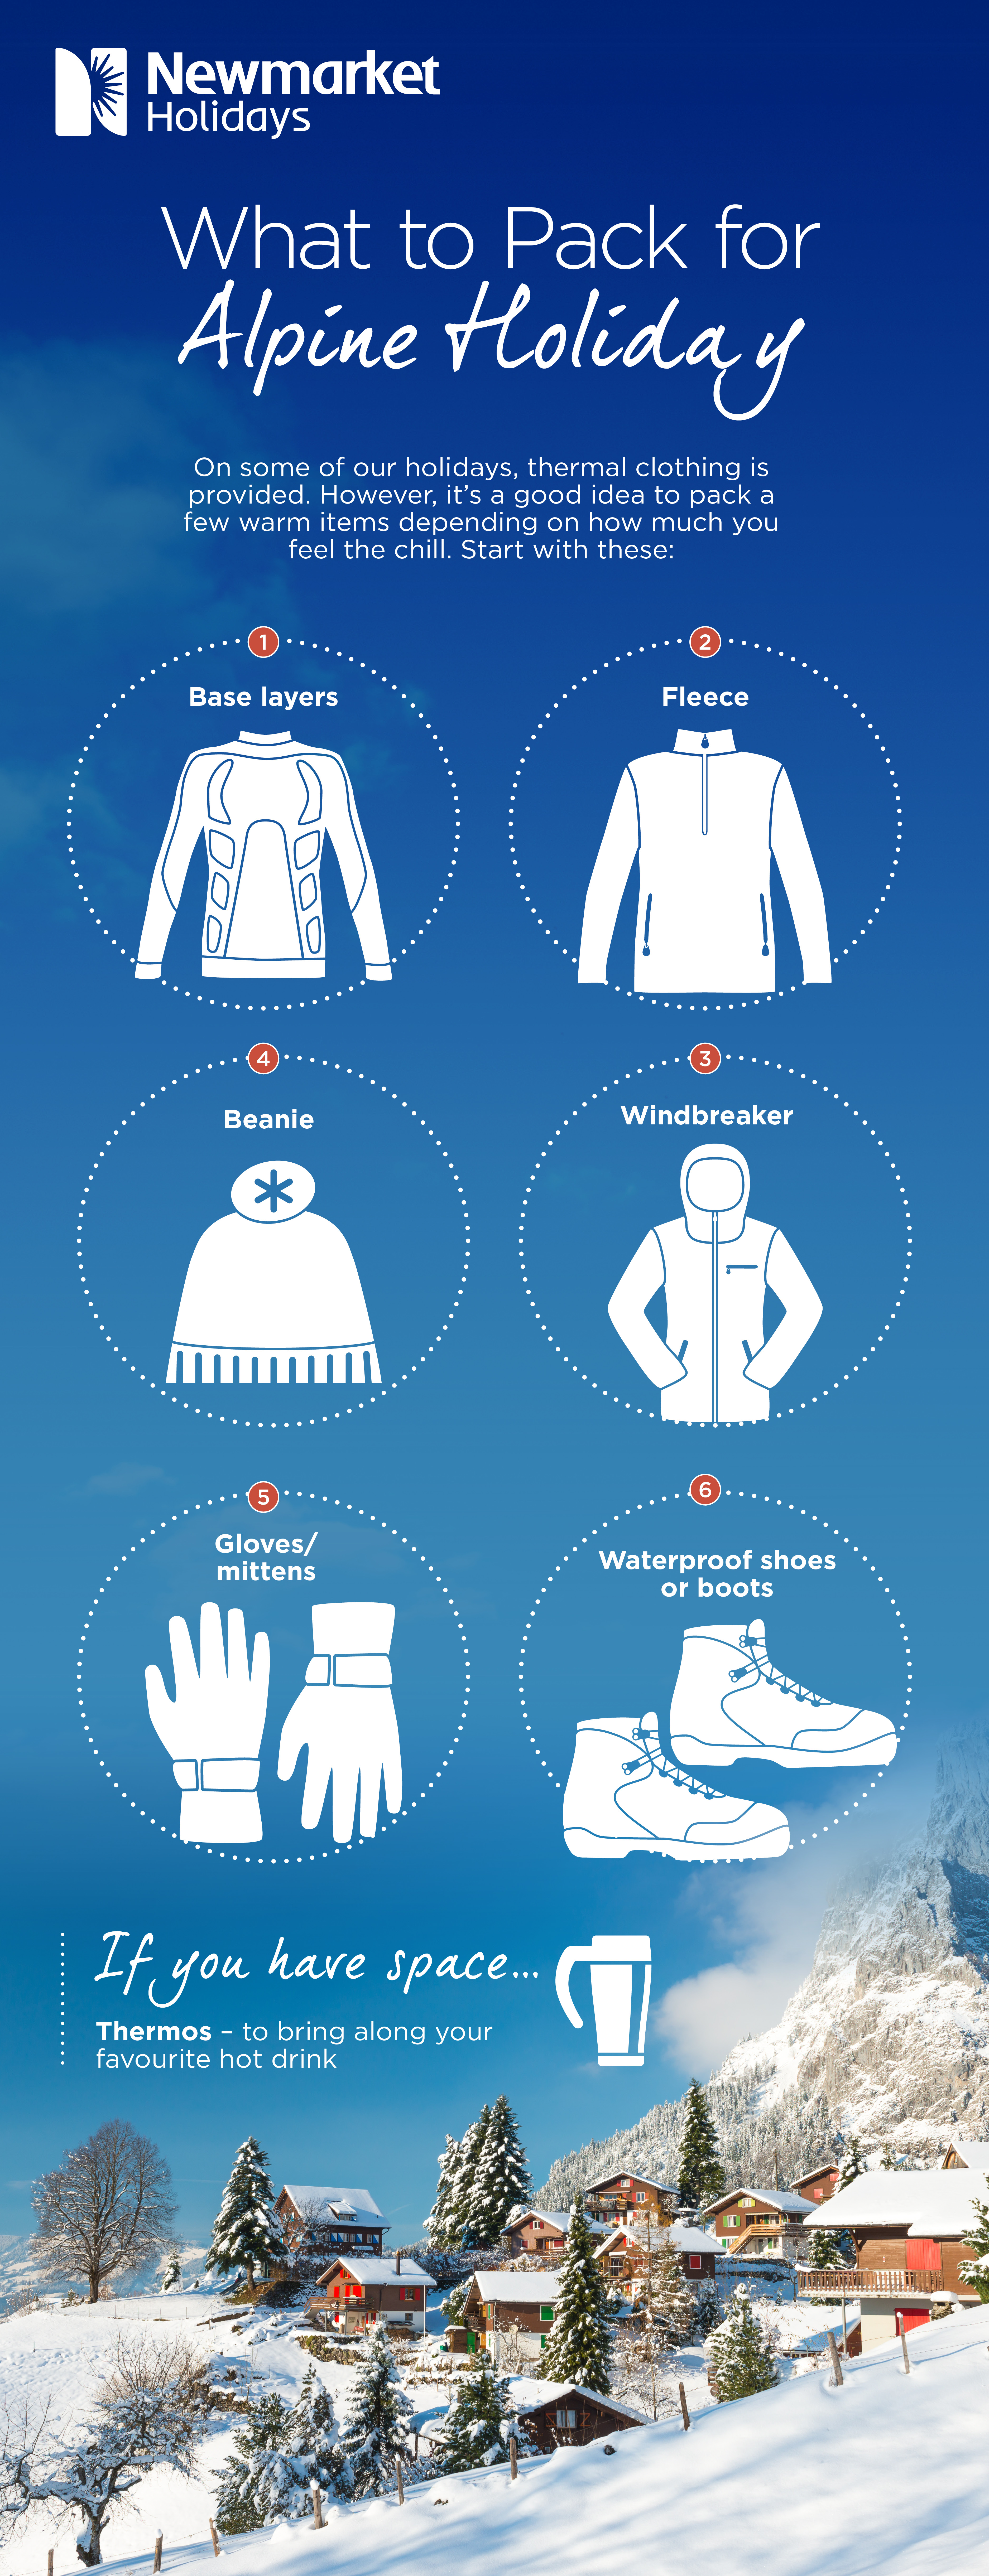 Ready for the chill? Pack these essentials on your epic alpine trip